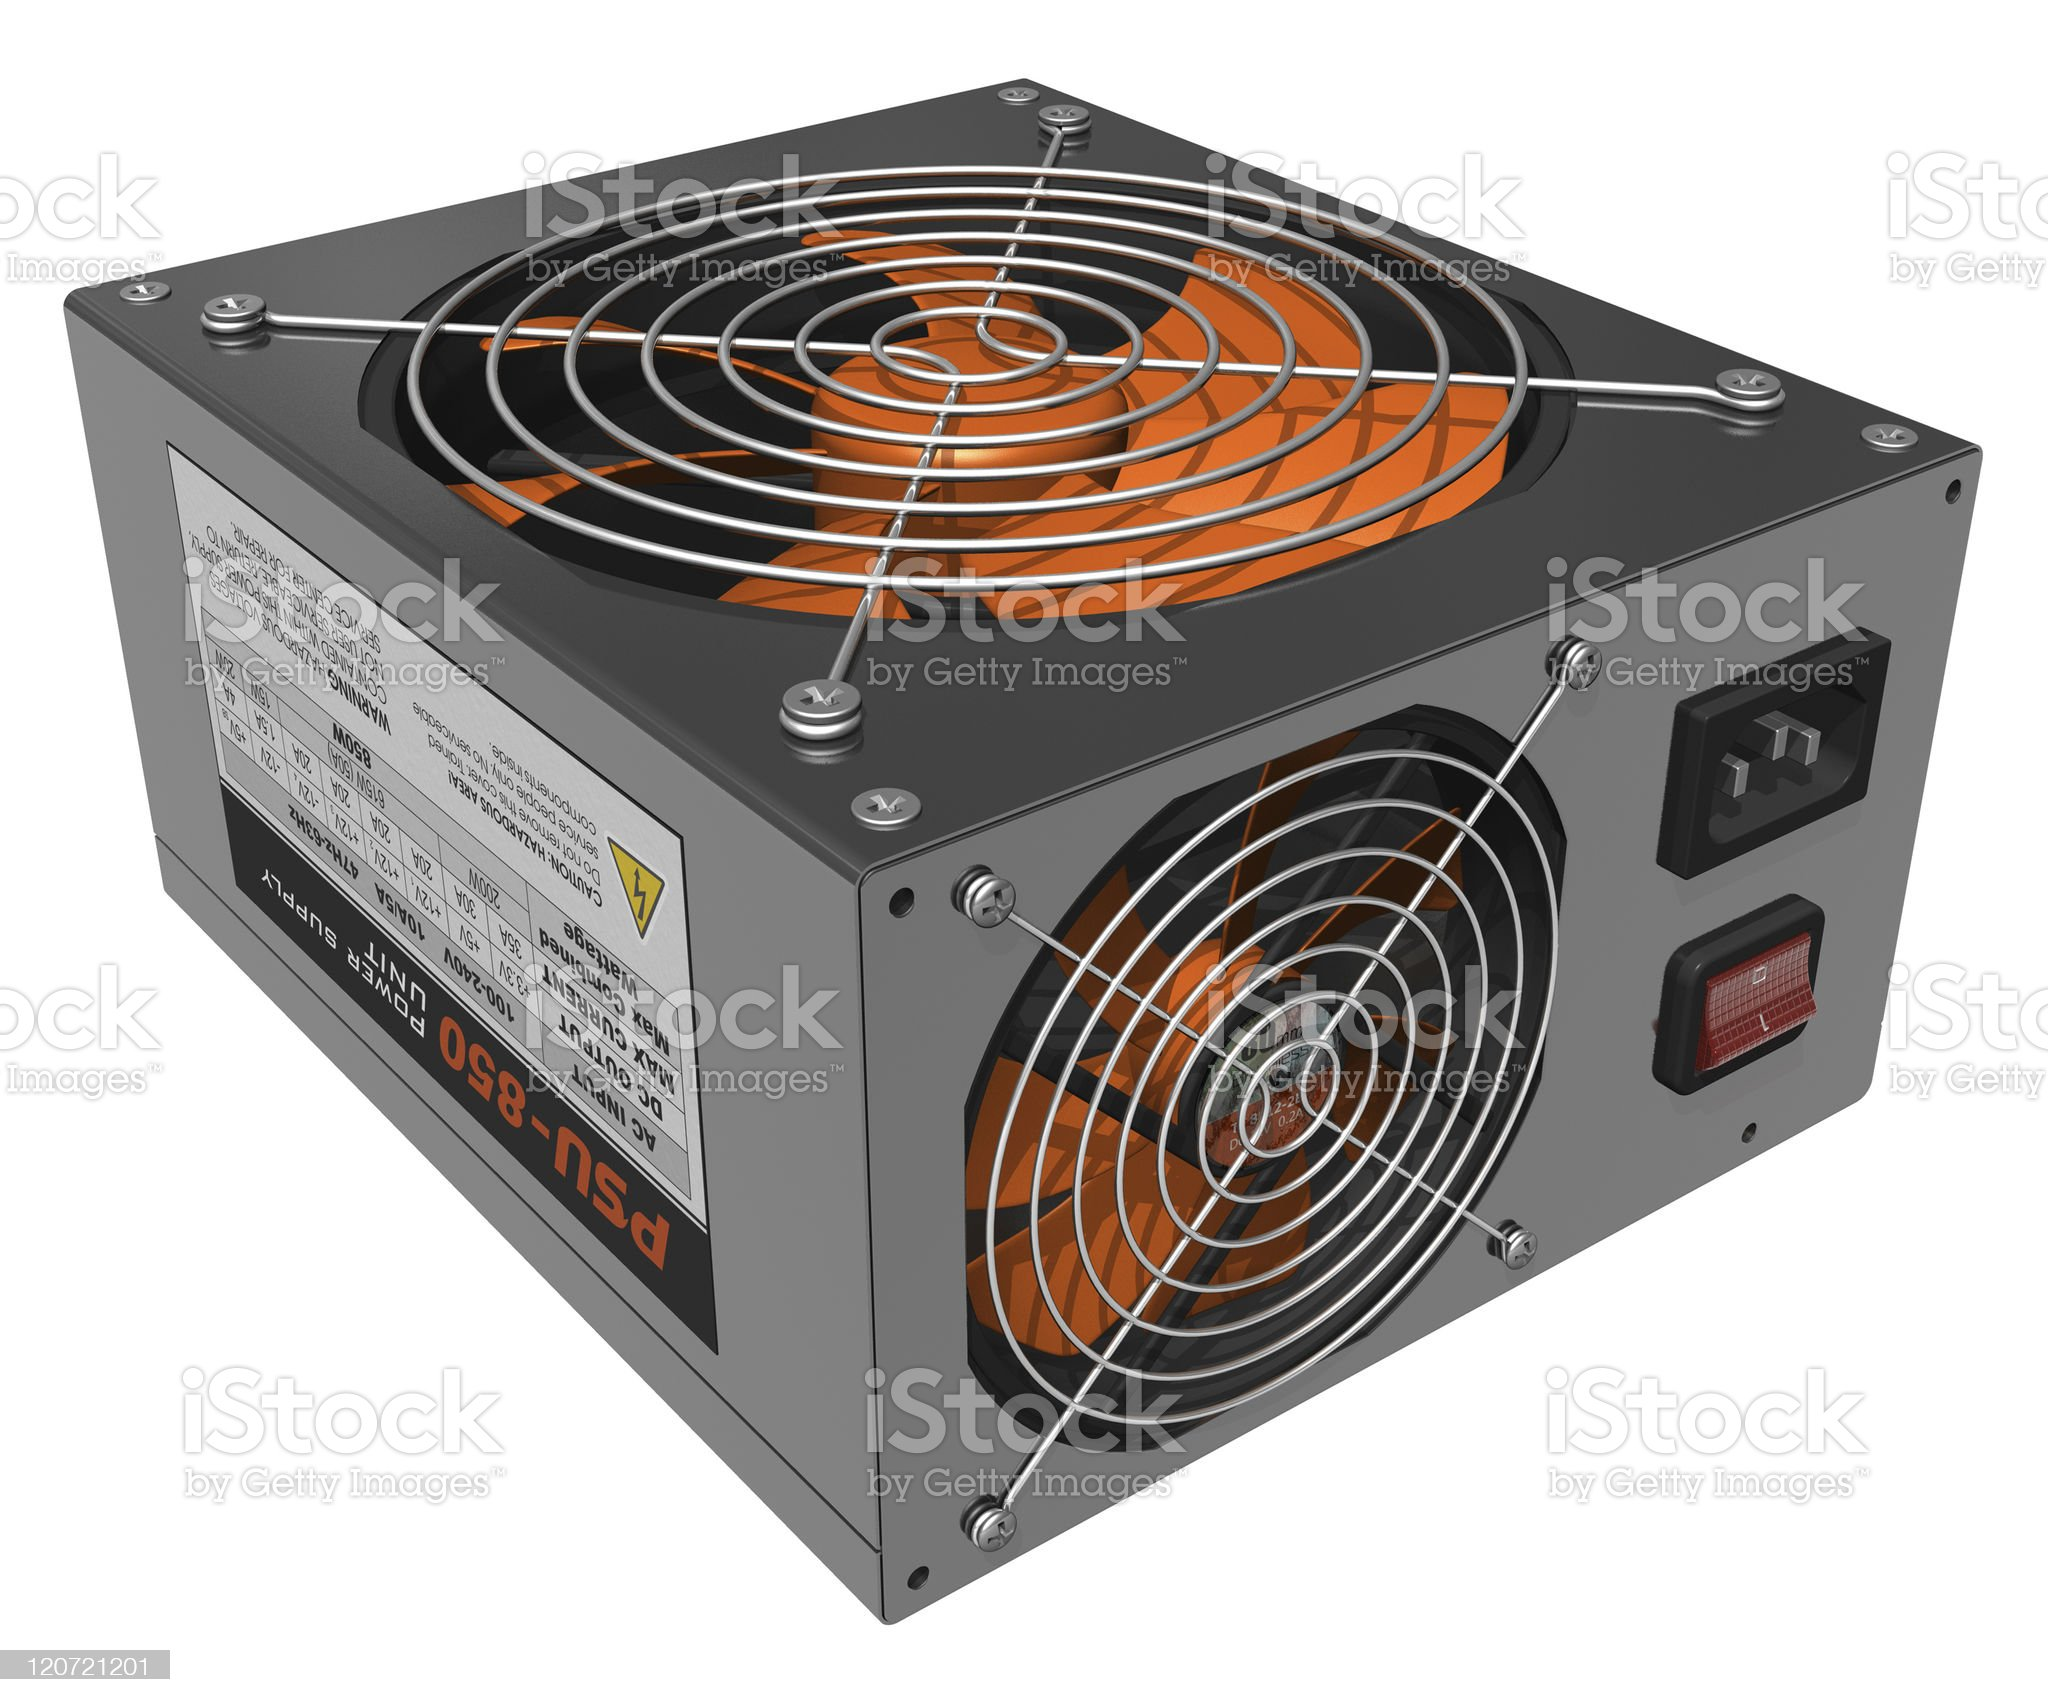 Computer AC power supply unit royalty-free stock photo